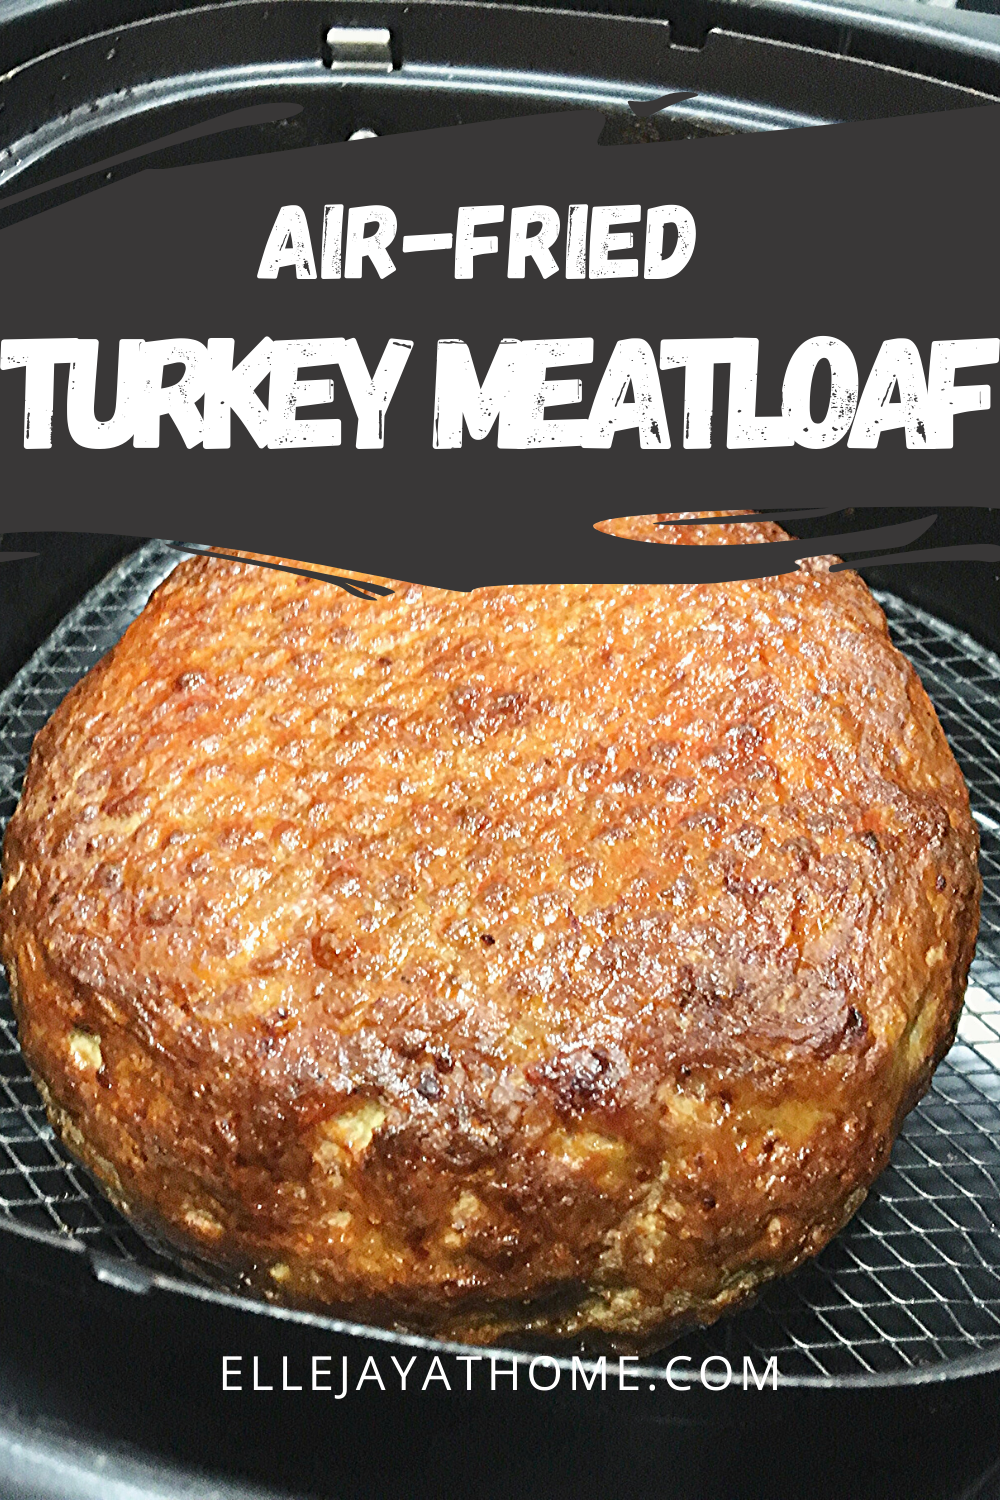 How To Make Amazing Air Fryer Turkey Meatloaf Recipe Air Fryer Recipes Healthy Turkey Meatloaf Air Fryer Recipes Easy